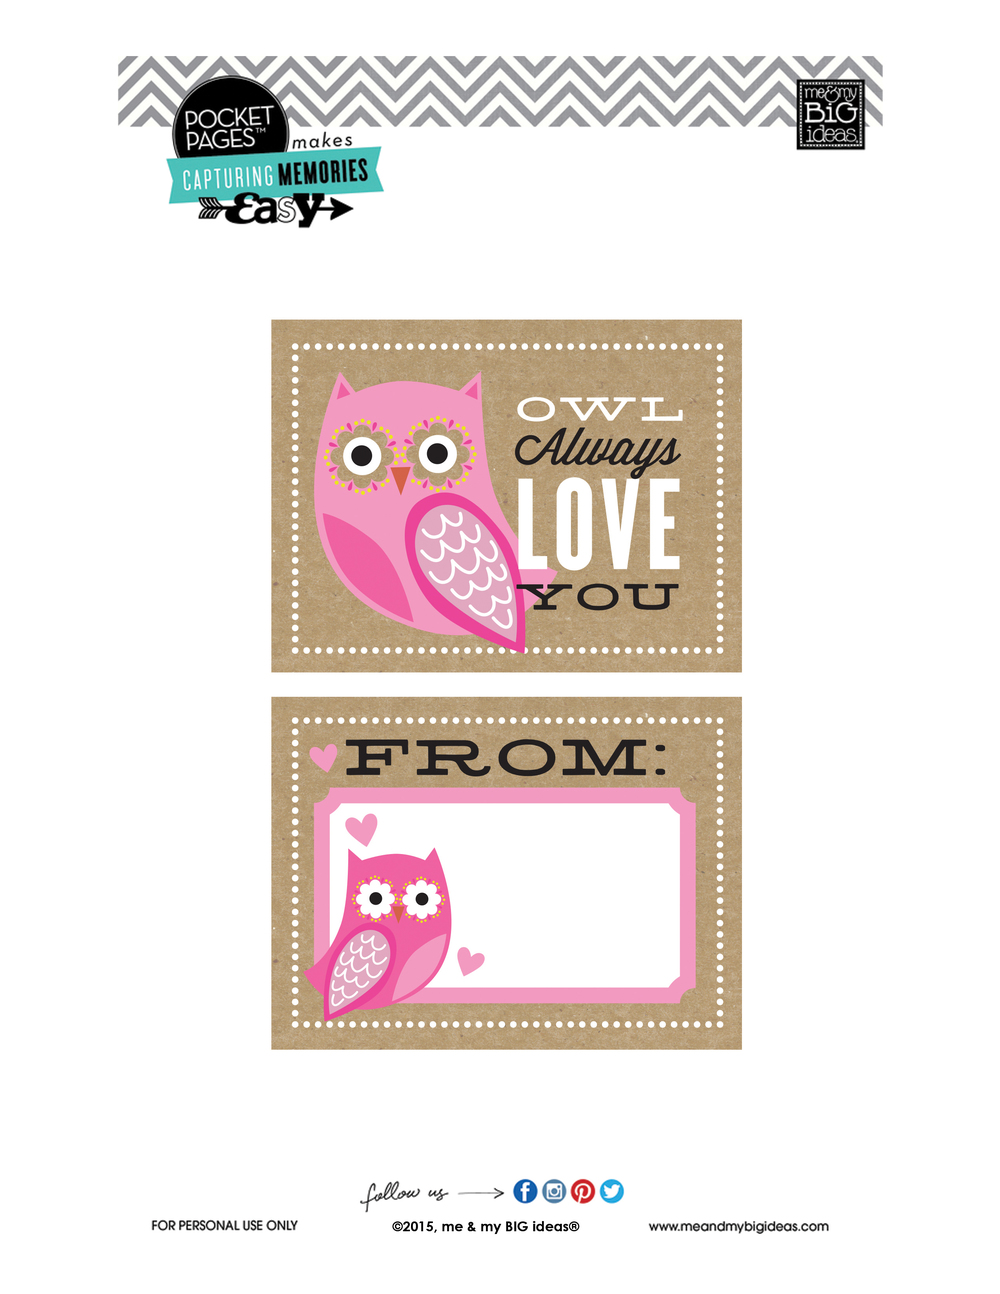 Valentine's POCKET PAGES™ Free Printable 05 | me & my BIG ideas